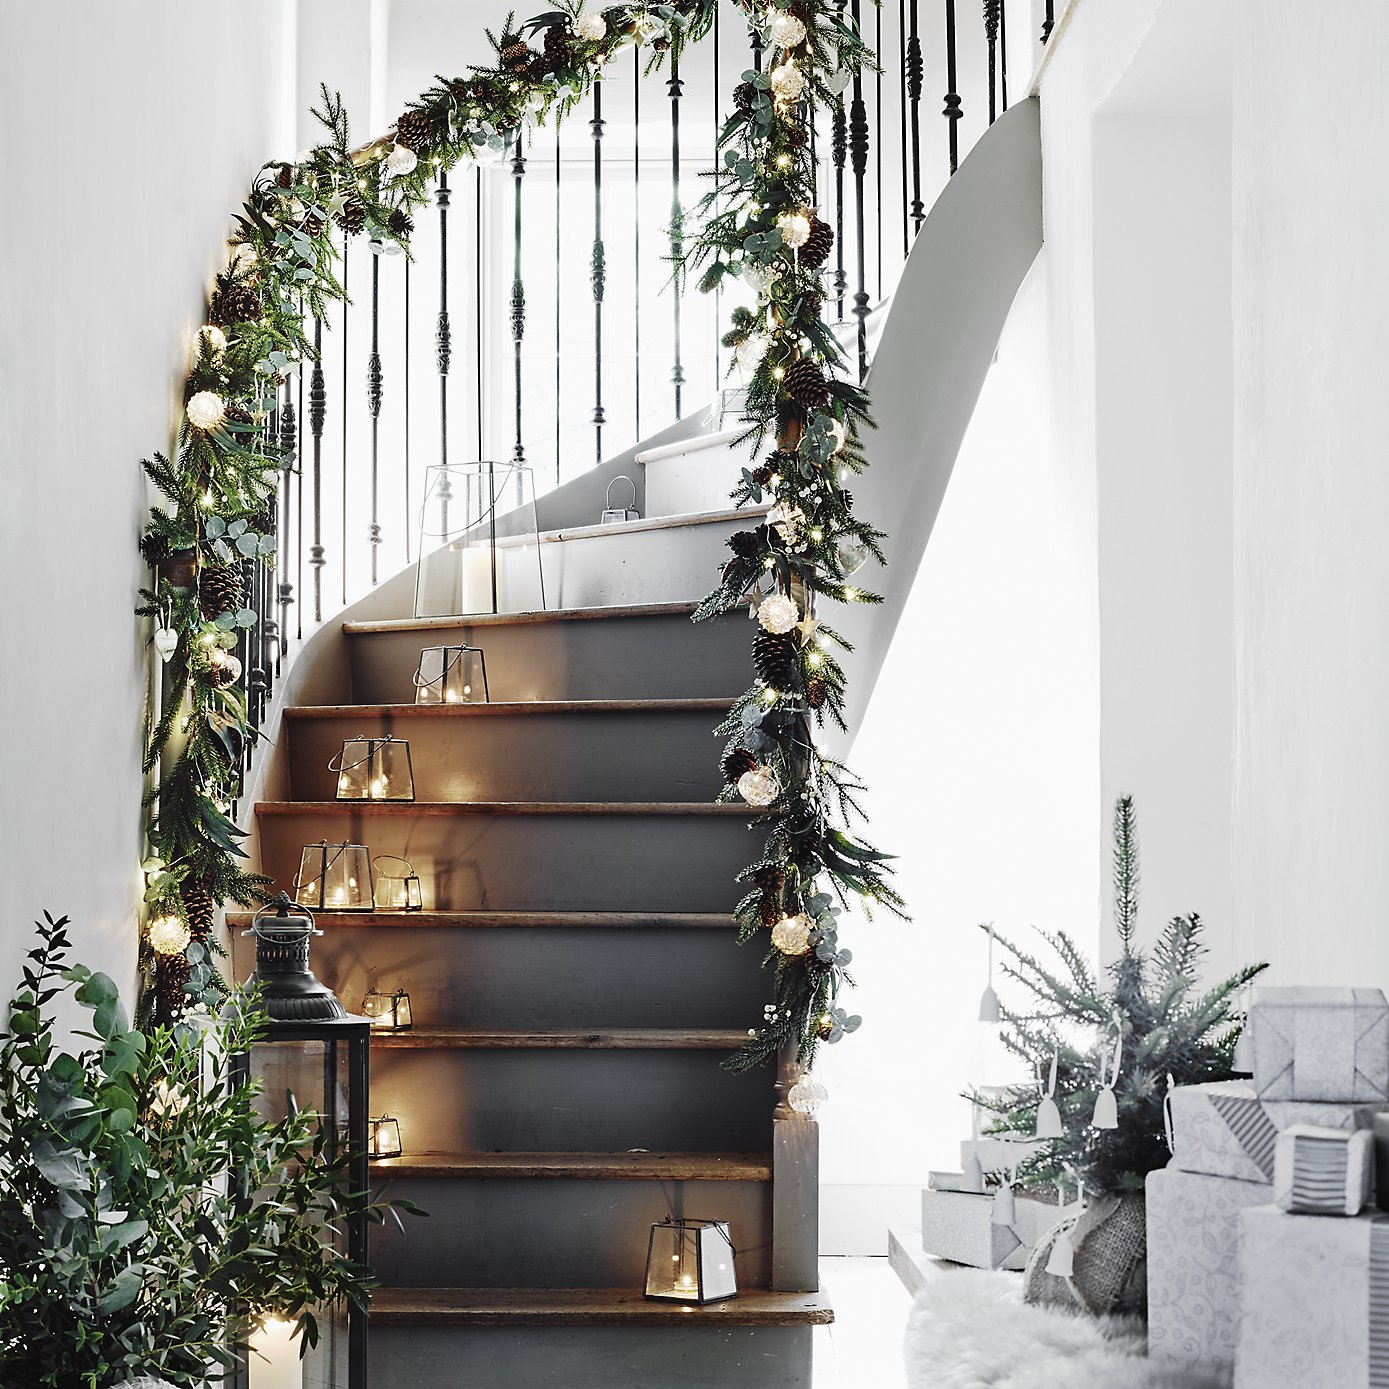 whats hot on pinterest 5 scandinavian christmas decorations 4 scandinavian christmas decorations whats hot on pinterest